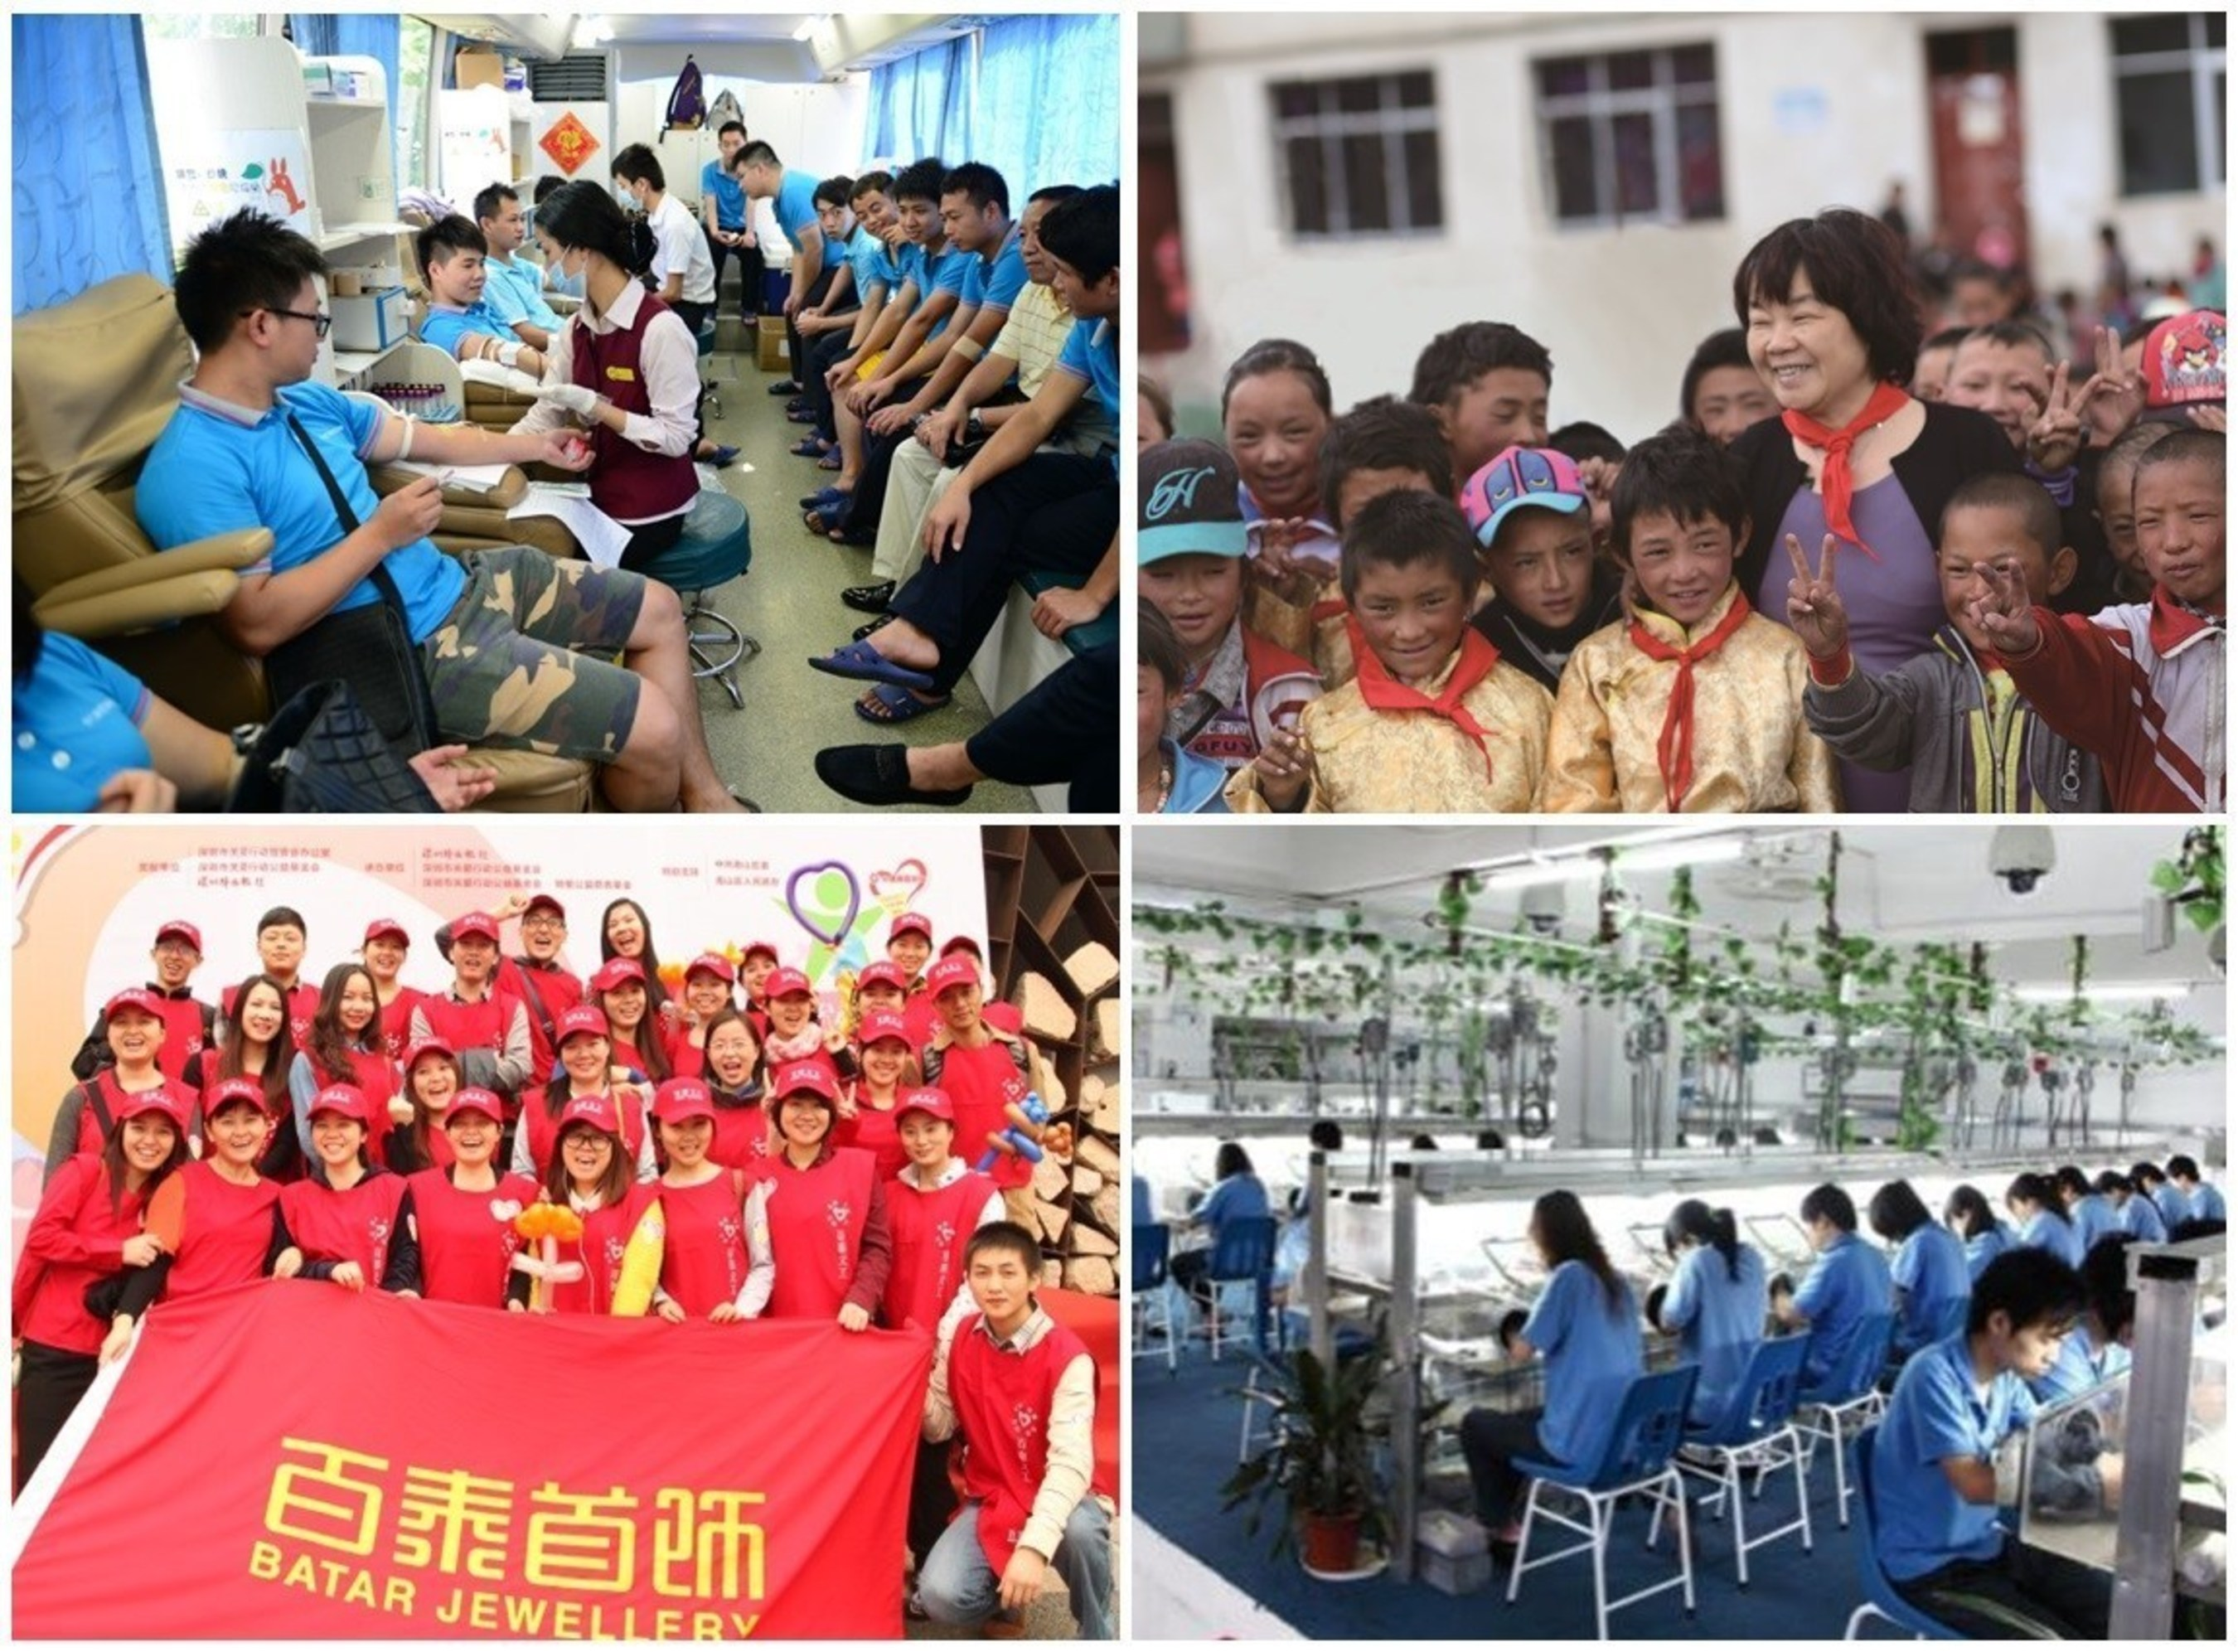 (From top left, clockwise) Employees at Shenzhen Foreway Jewellery Group Co Ltd participating in a blood drive; Wang Chunli, General Manager of Beijing Cai Shi Kou Department Store Co Ltd in Tibet for a charitable cause; environmental-friendly workplace at Shenzhen Y&M Jewelry Co Ltd; and Shenzhen Batar Investment Holding Group Co Ltd team completing a community walkathon